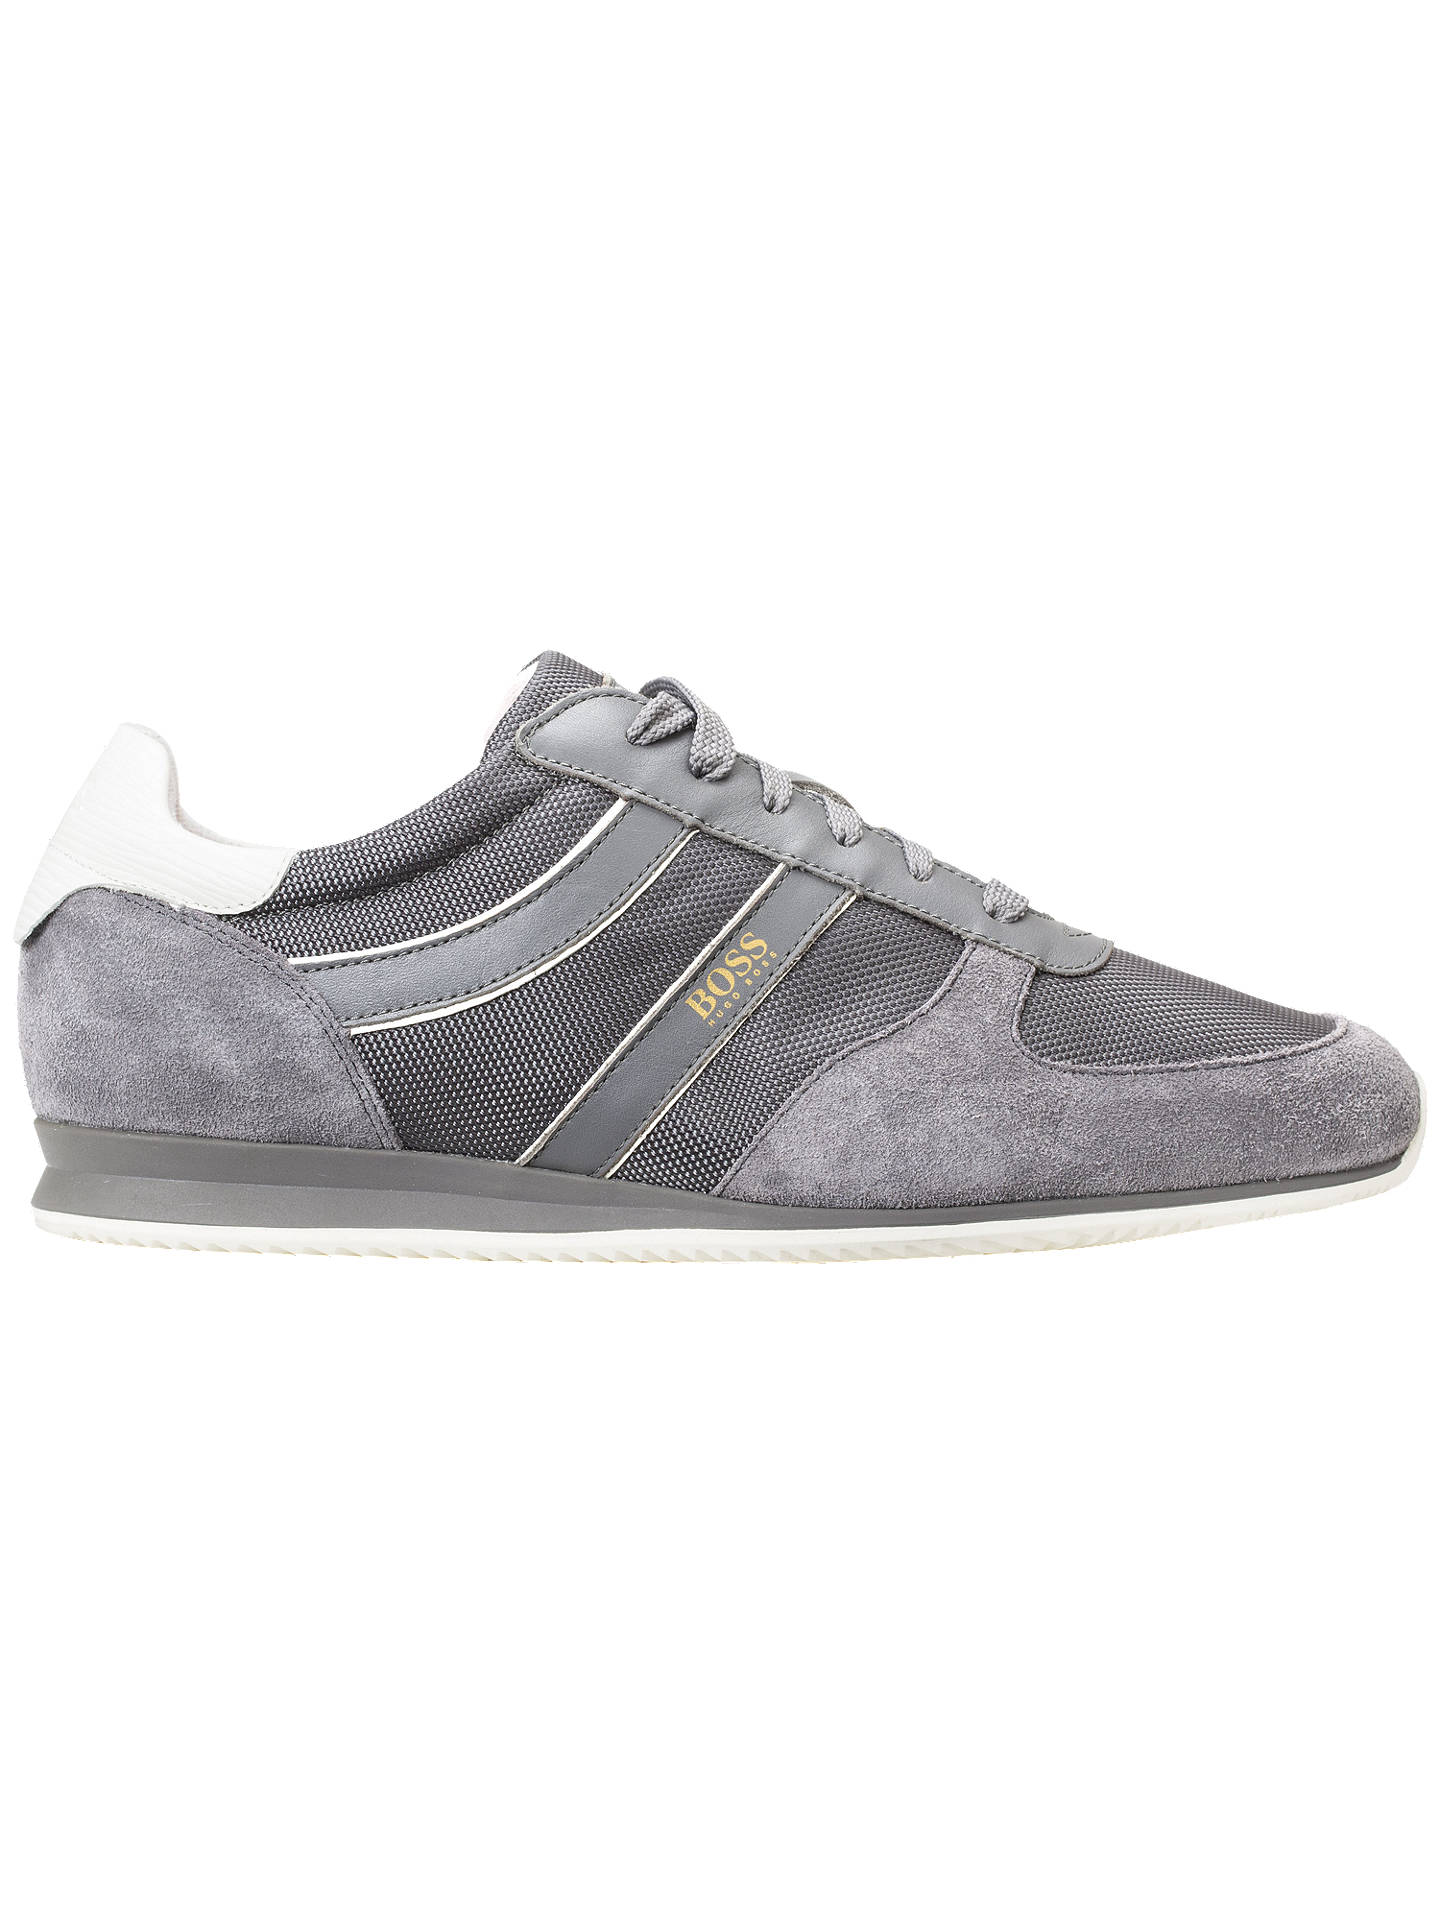 929af667e0 Buy HUGO BOSS Orlando Trainers, Grey, 7 Online at johnlewis.com